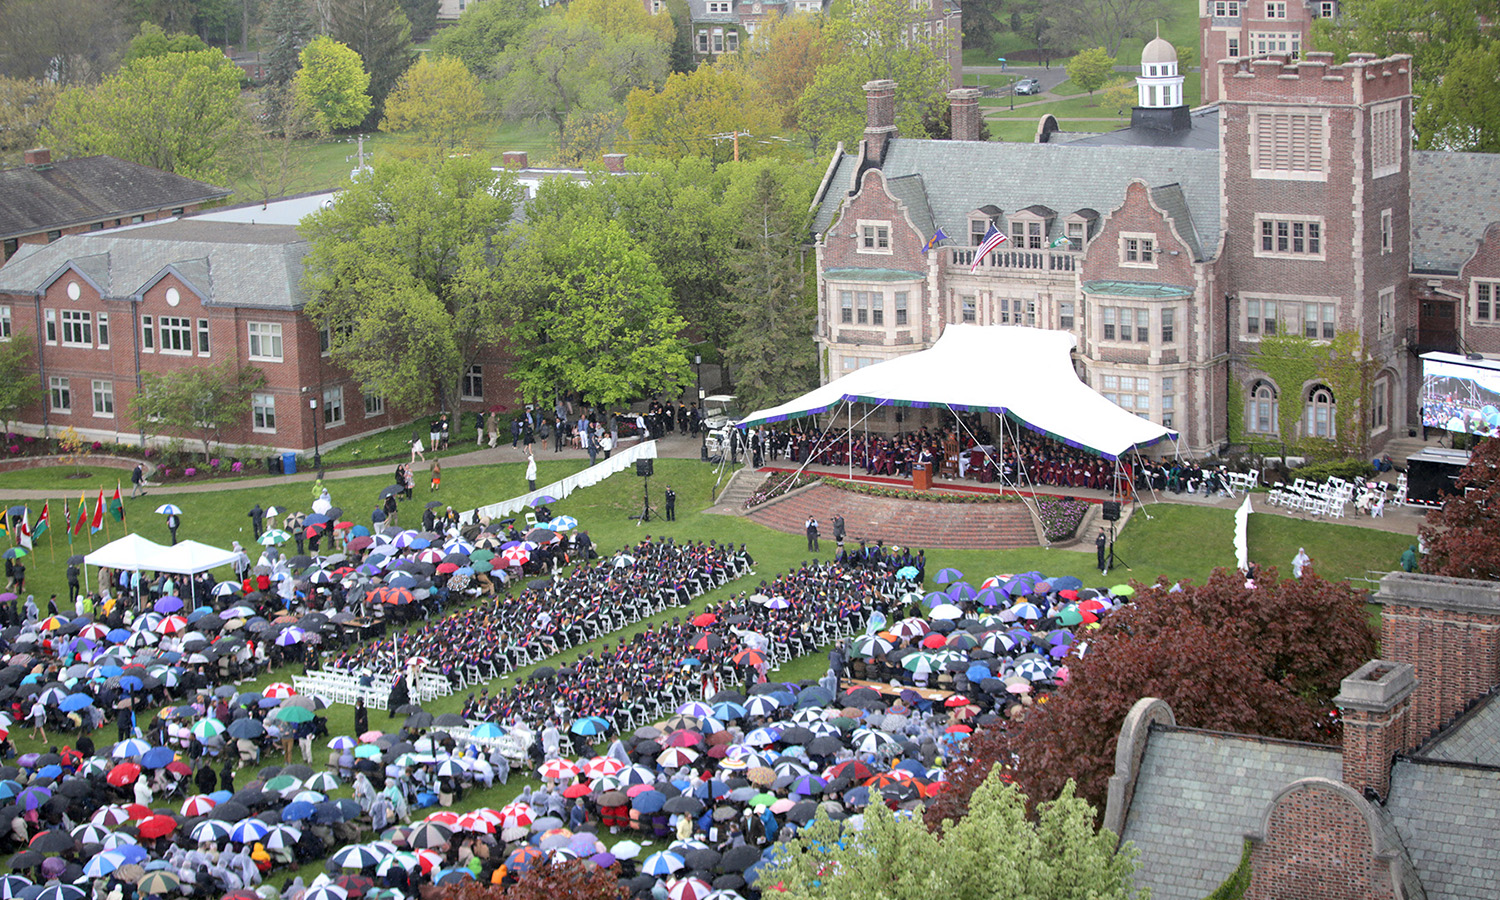 The view from St. Mark's Tower during Commencement 2017.